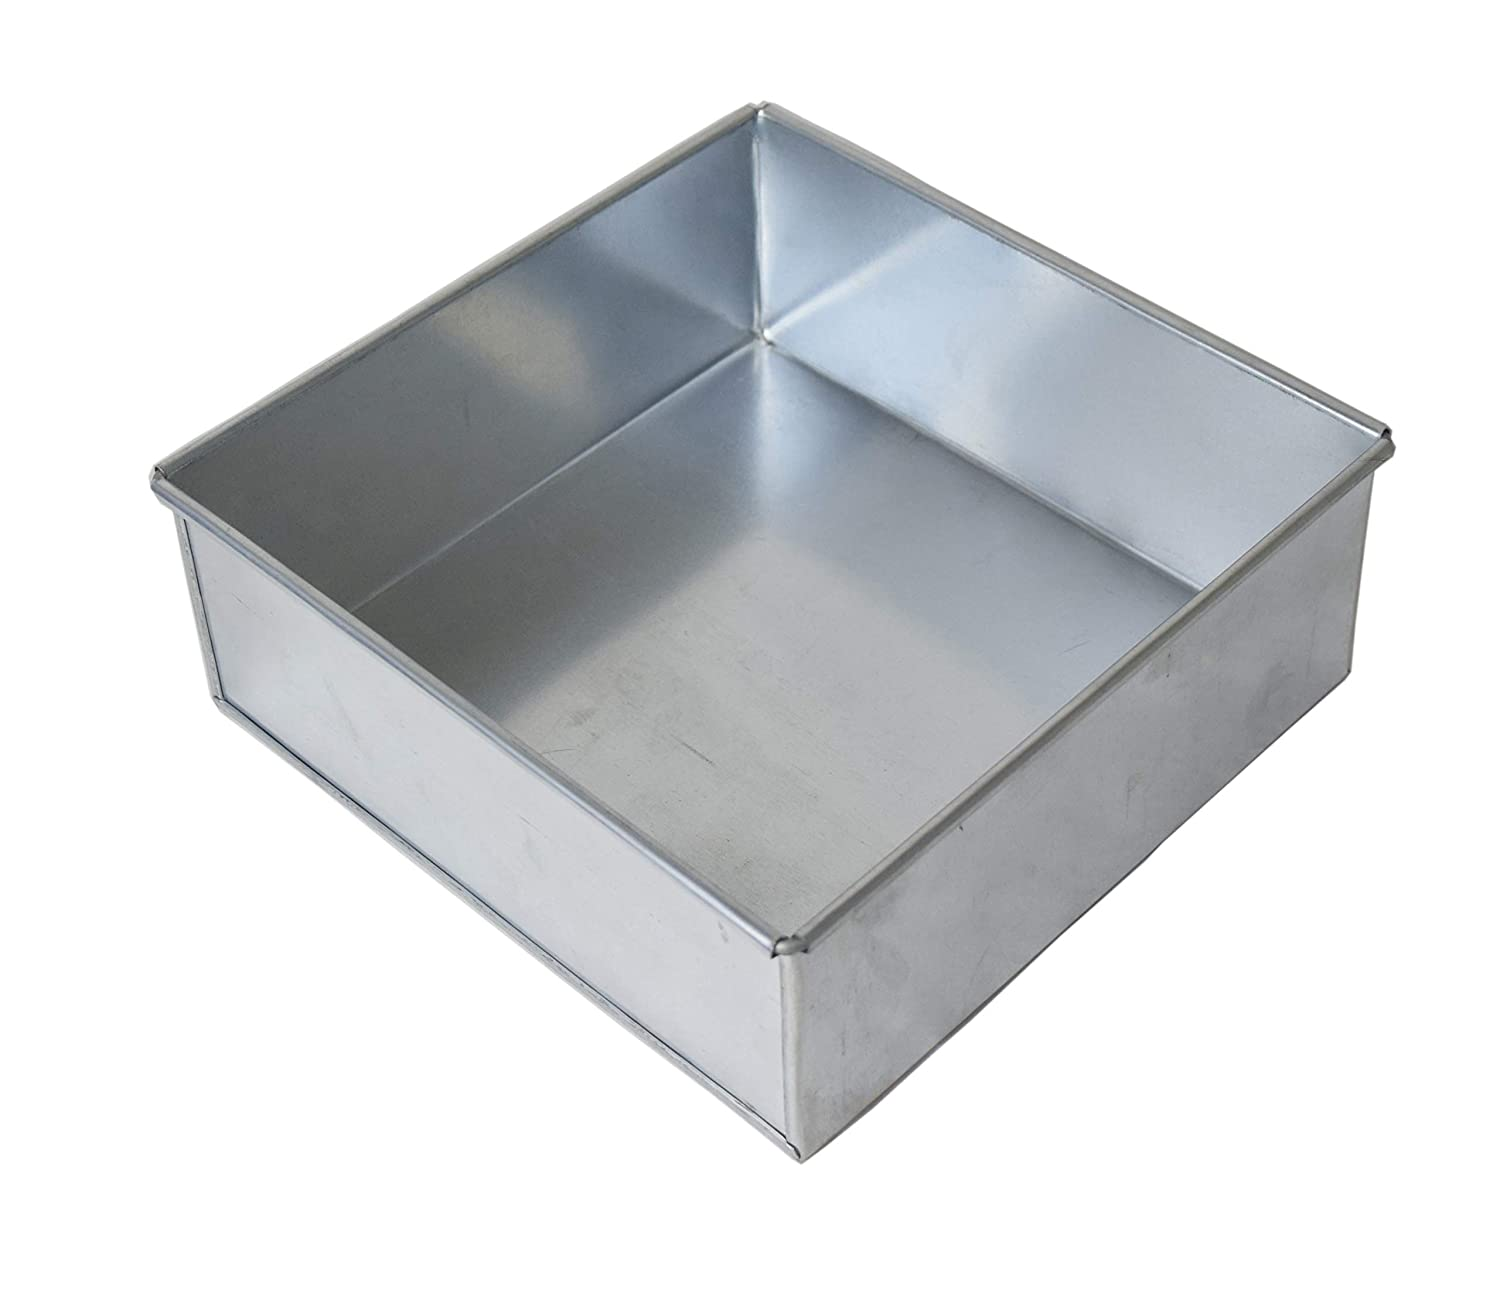 Square Birthday Wedding Anniversary Cake Baking Pan / Tin 12